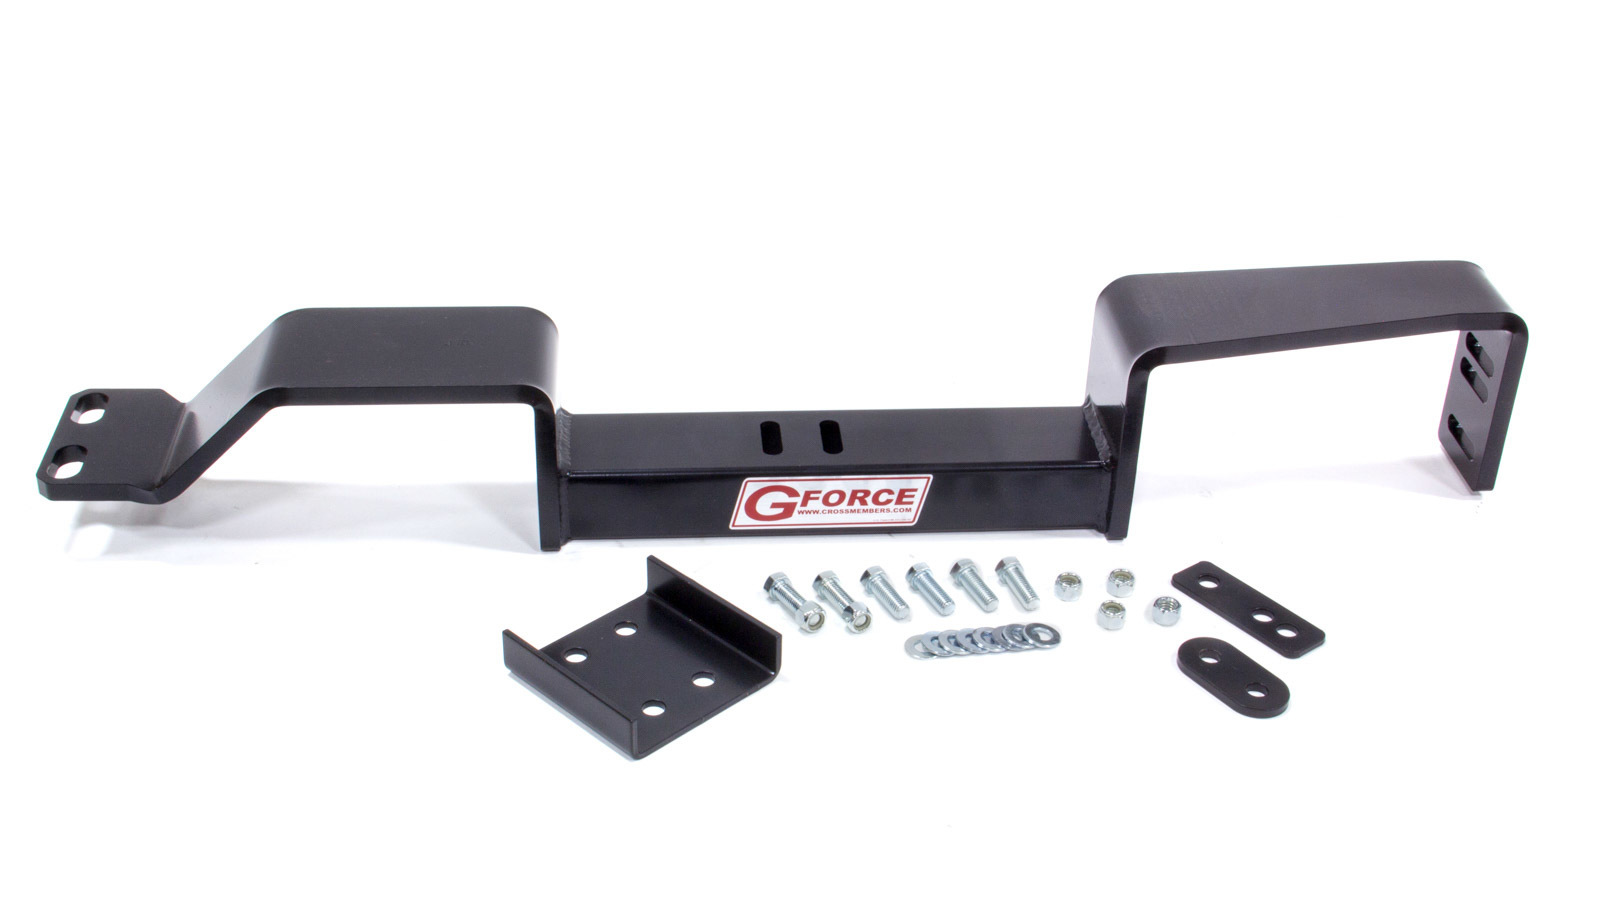 G Force Crossmembers RCS-10 Transmission Crossmember, Bolt-On, Steel, Black Powder Coat, GM Compact Truck 1982-2005, Each